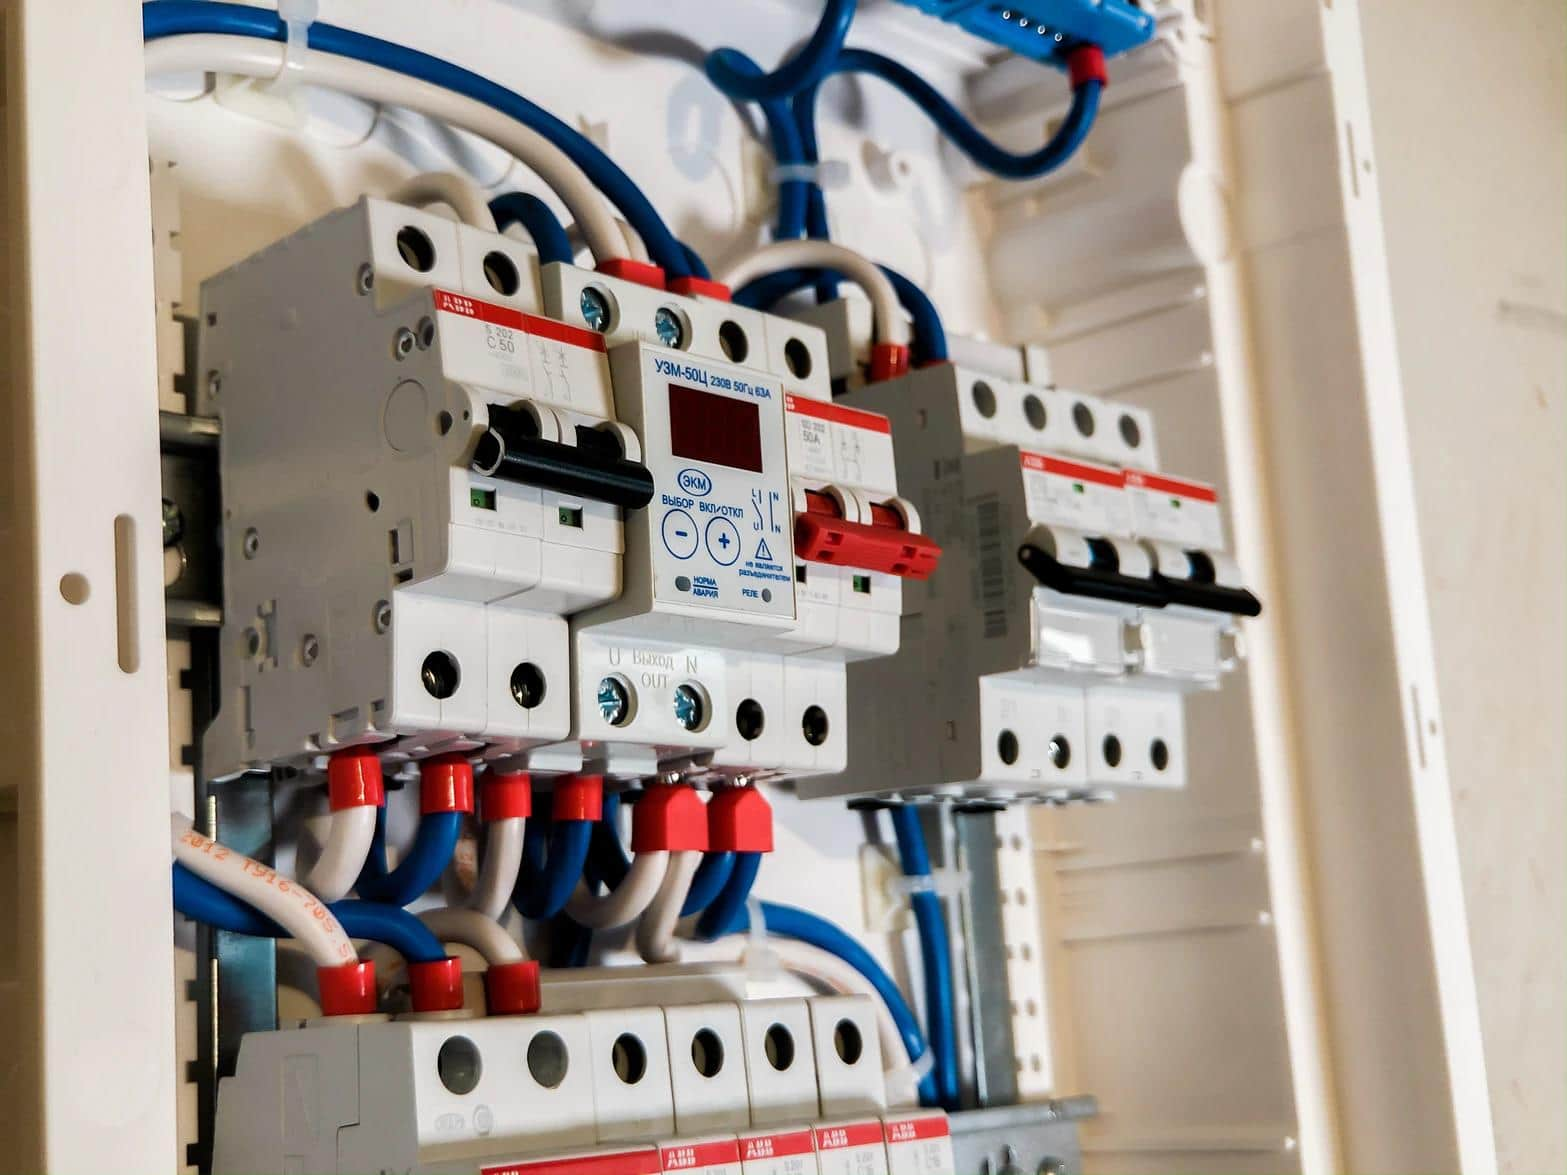 What You Need To Know Before Wiring Up Your Home. Electric fuses on the substrate